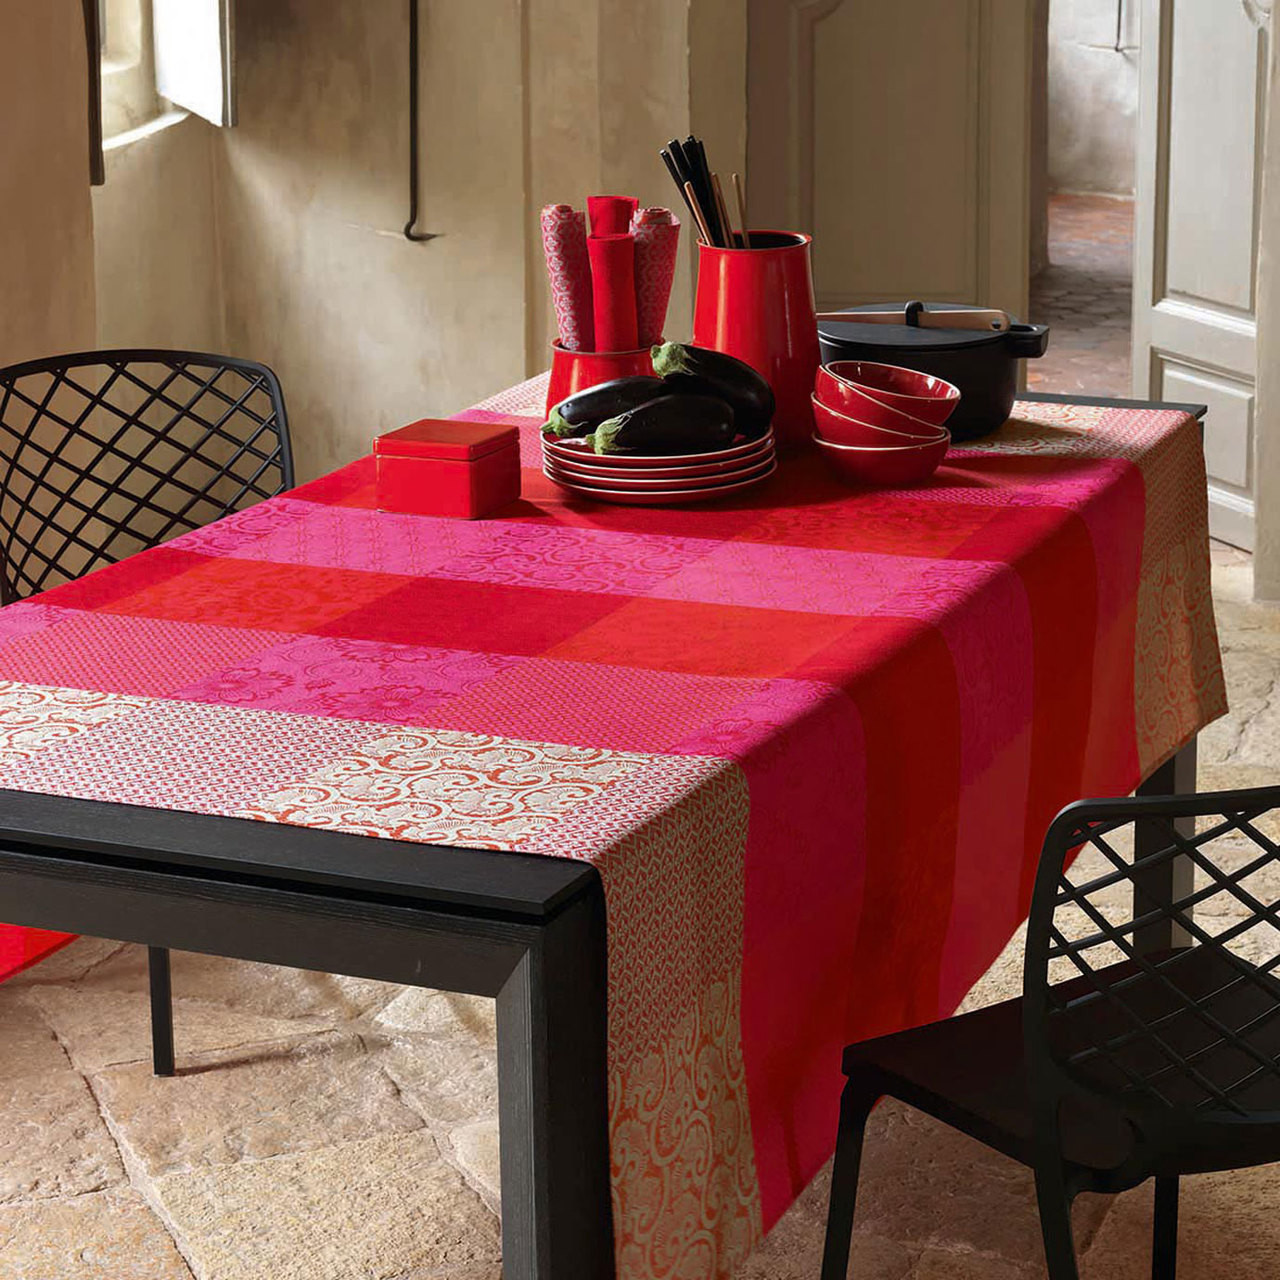 Le Jacquard Francais Tablecloth Kyoto Cherry 175 x 175 Cotton and ...